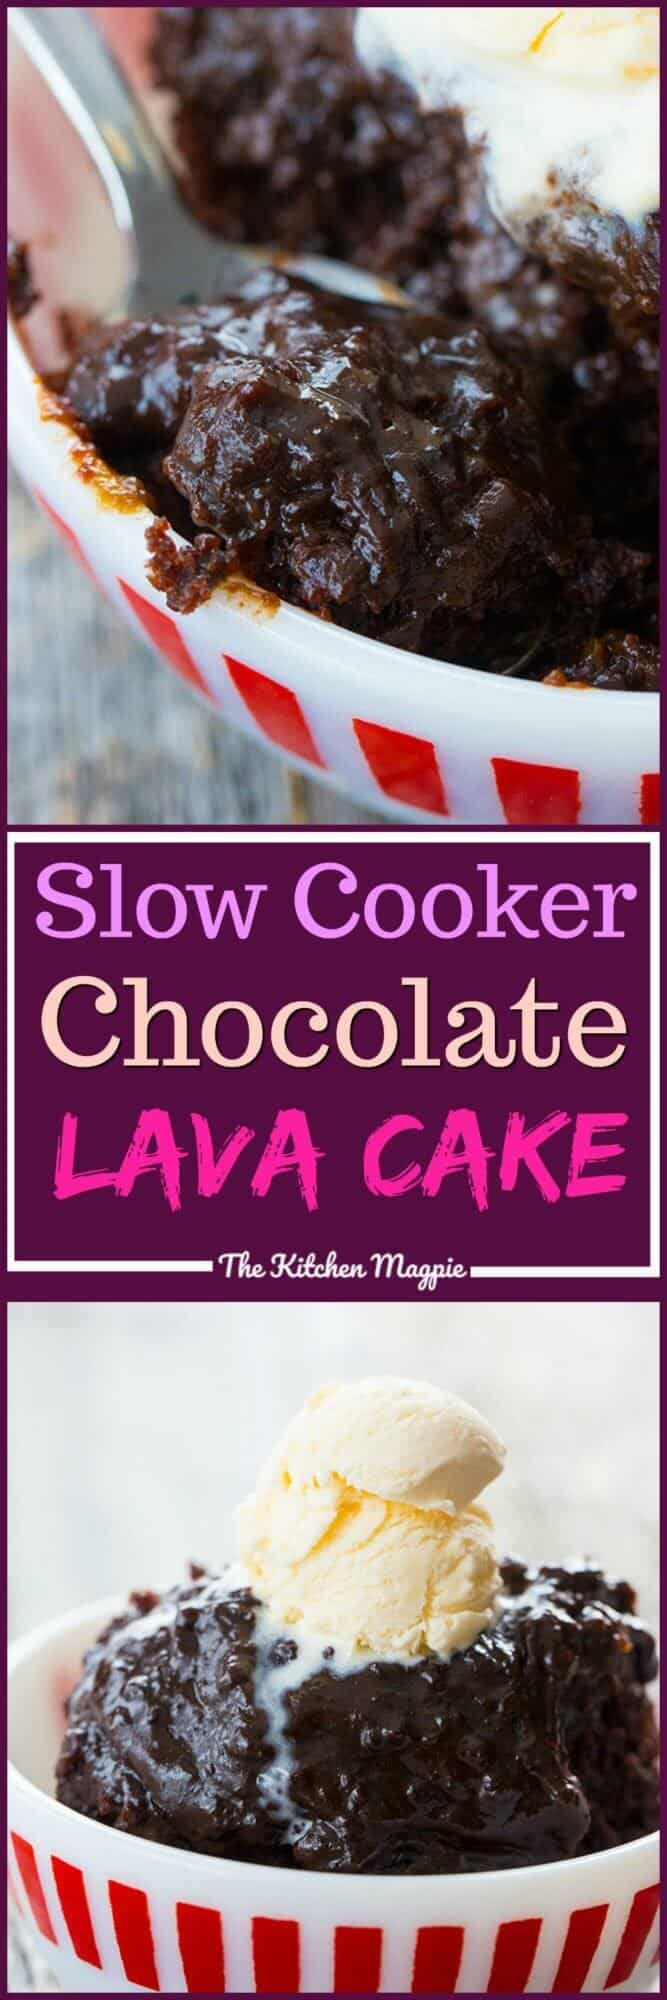 Death By Chocolate Slow Cooker Lava Cake! This is honestly the best slow cooker lava cake you are ever going to make thanks to a secret ingredient! #crockpot #slowcooker #cake #deathbychocolate #chocolatecake #dessert